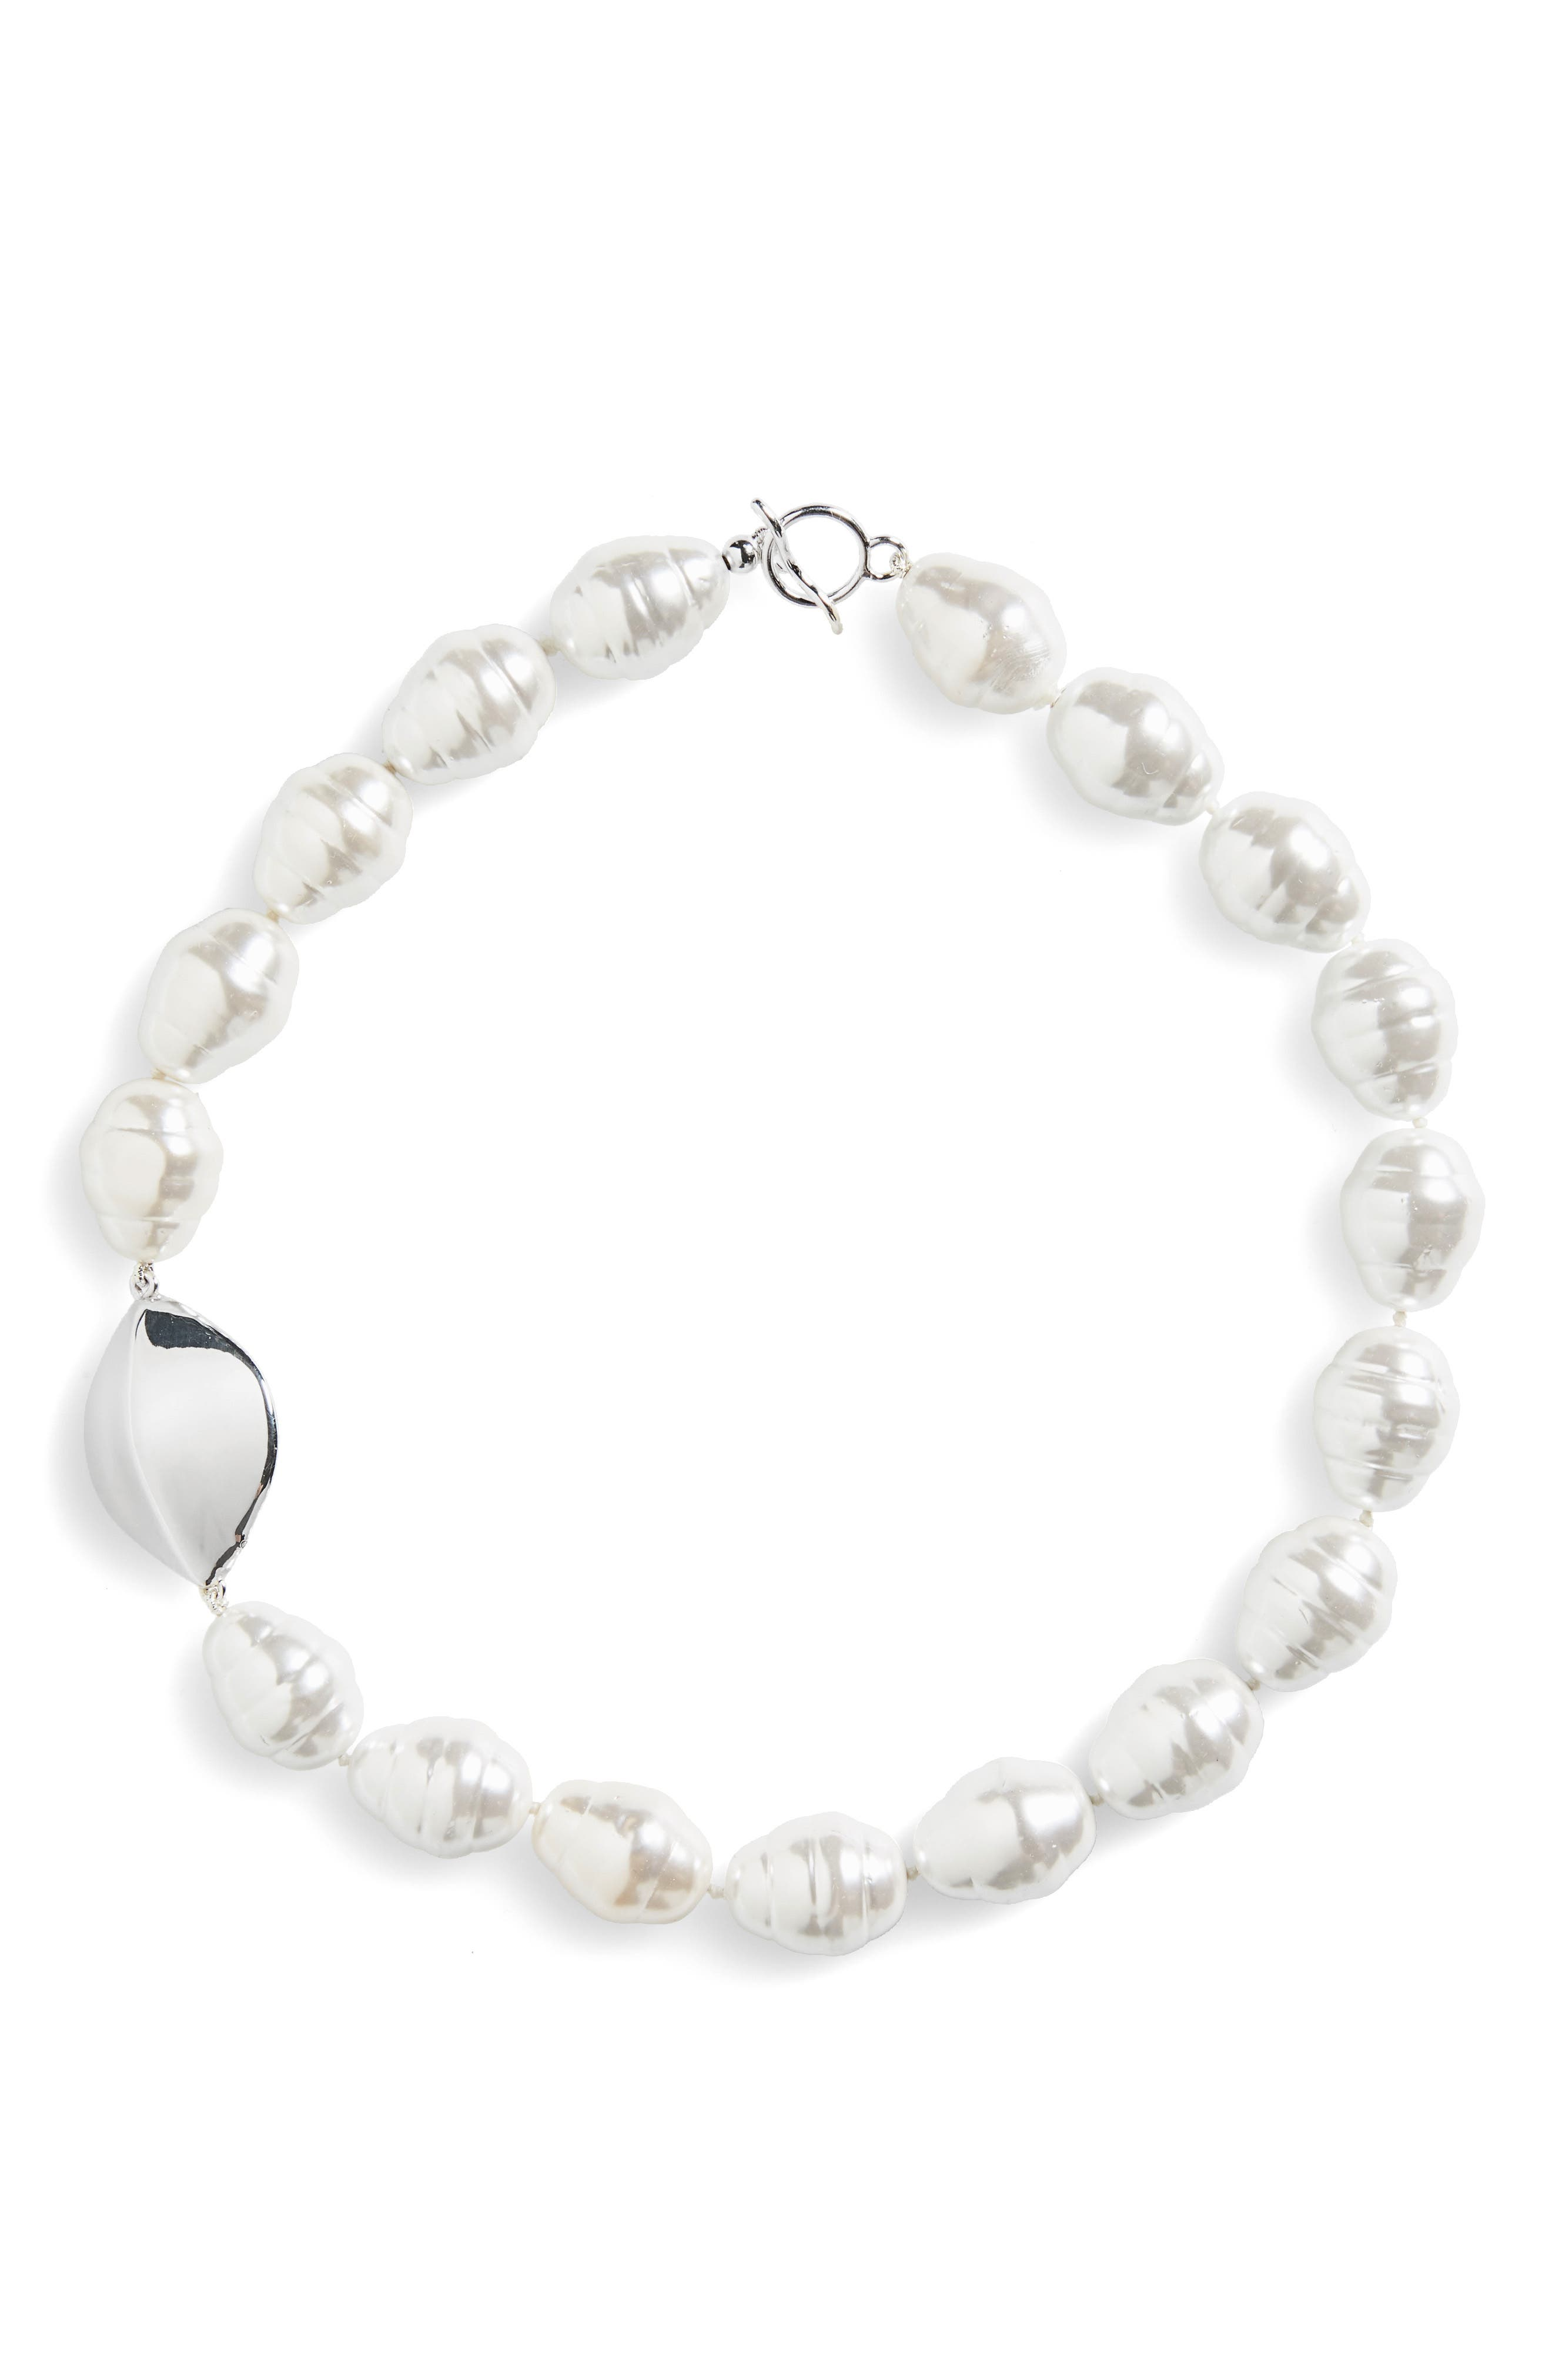 Simon Sebbag Baroque Imitation Pearl Necklace